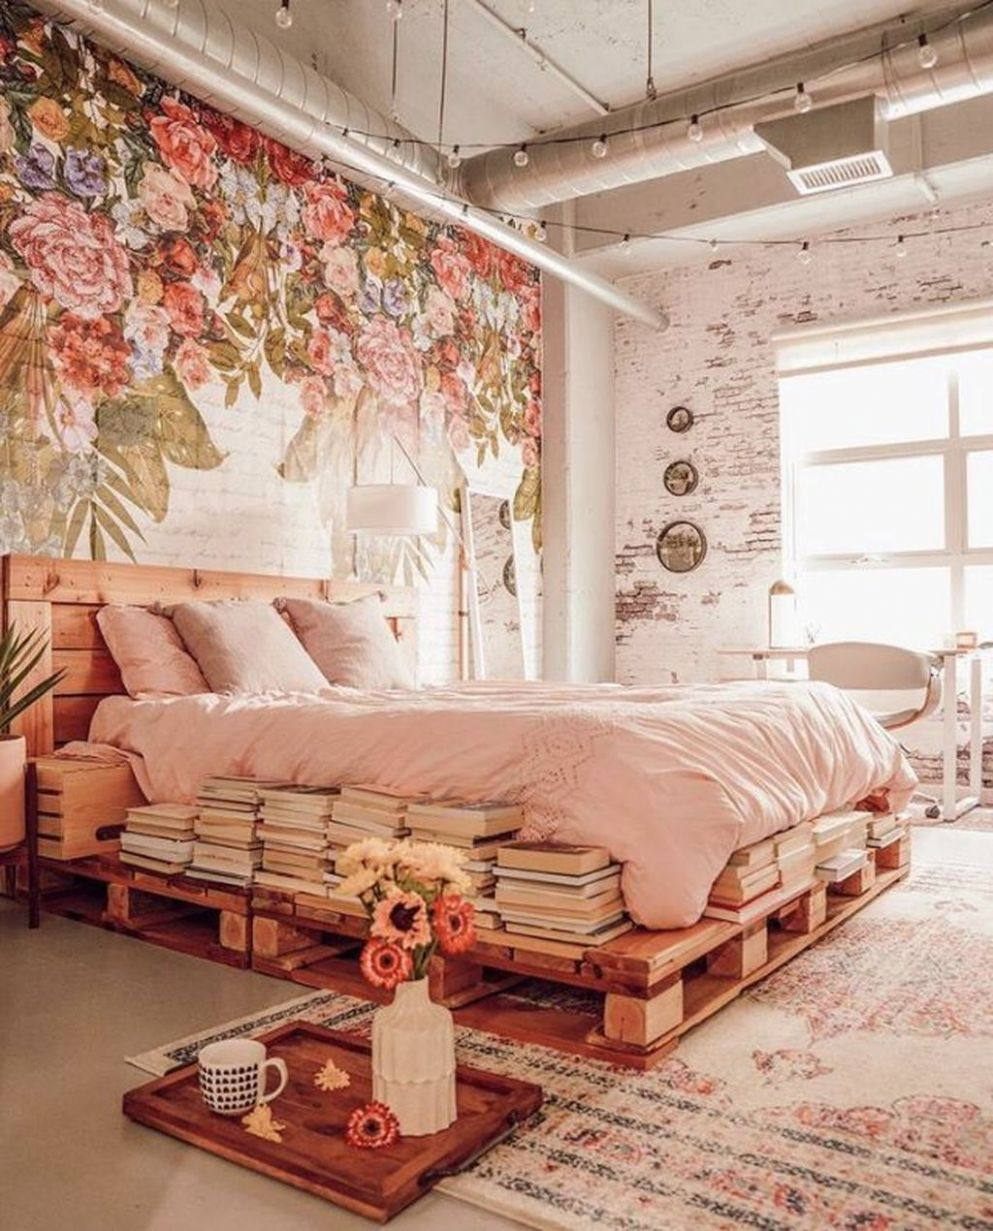 11 Romantic Bedroom Decor Ideas With Floral Theme - Trendehouse - bedroom ideas romantic